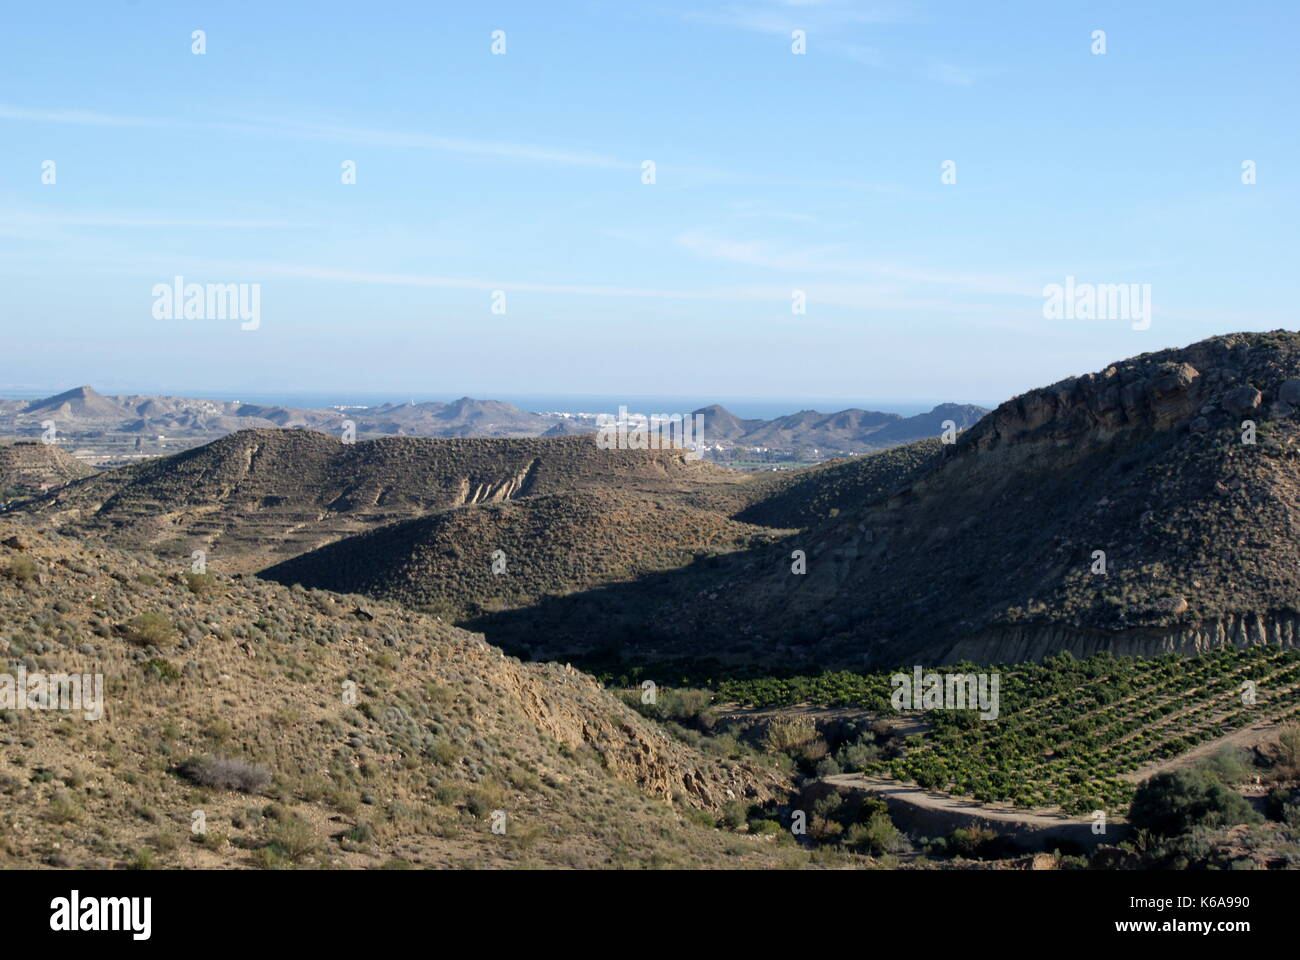 View of orange groves and across towards the sea from the Sierra Cabrera mountains, Almeria province, Spain - Stock Image